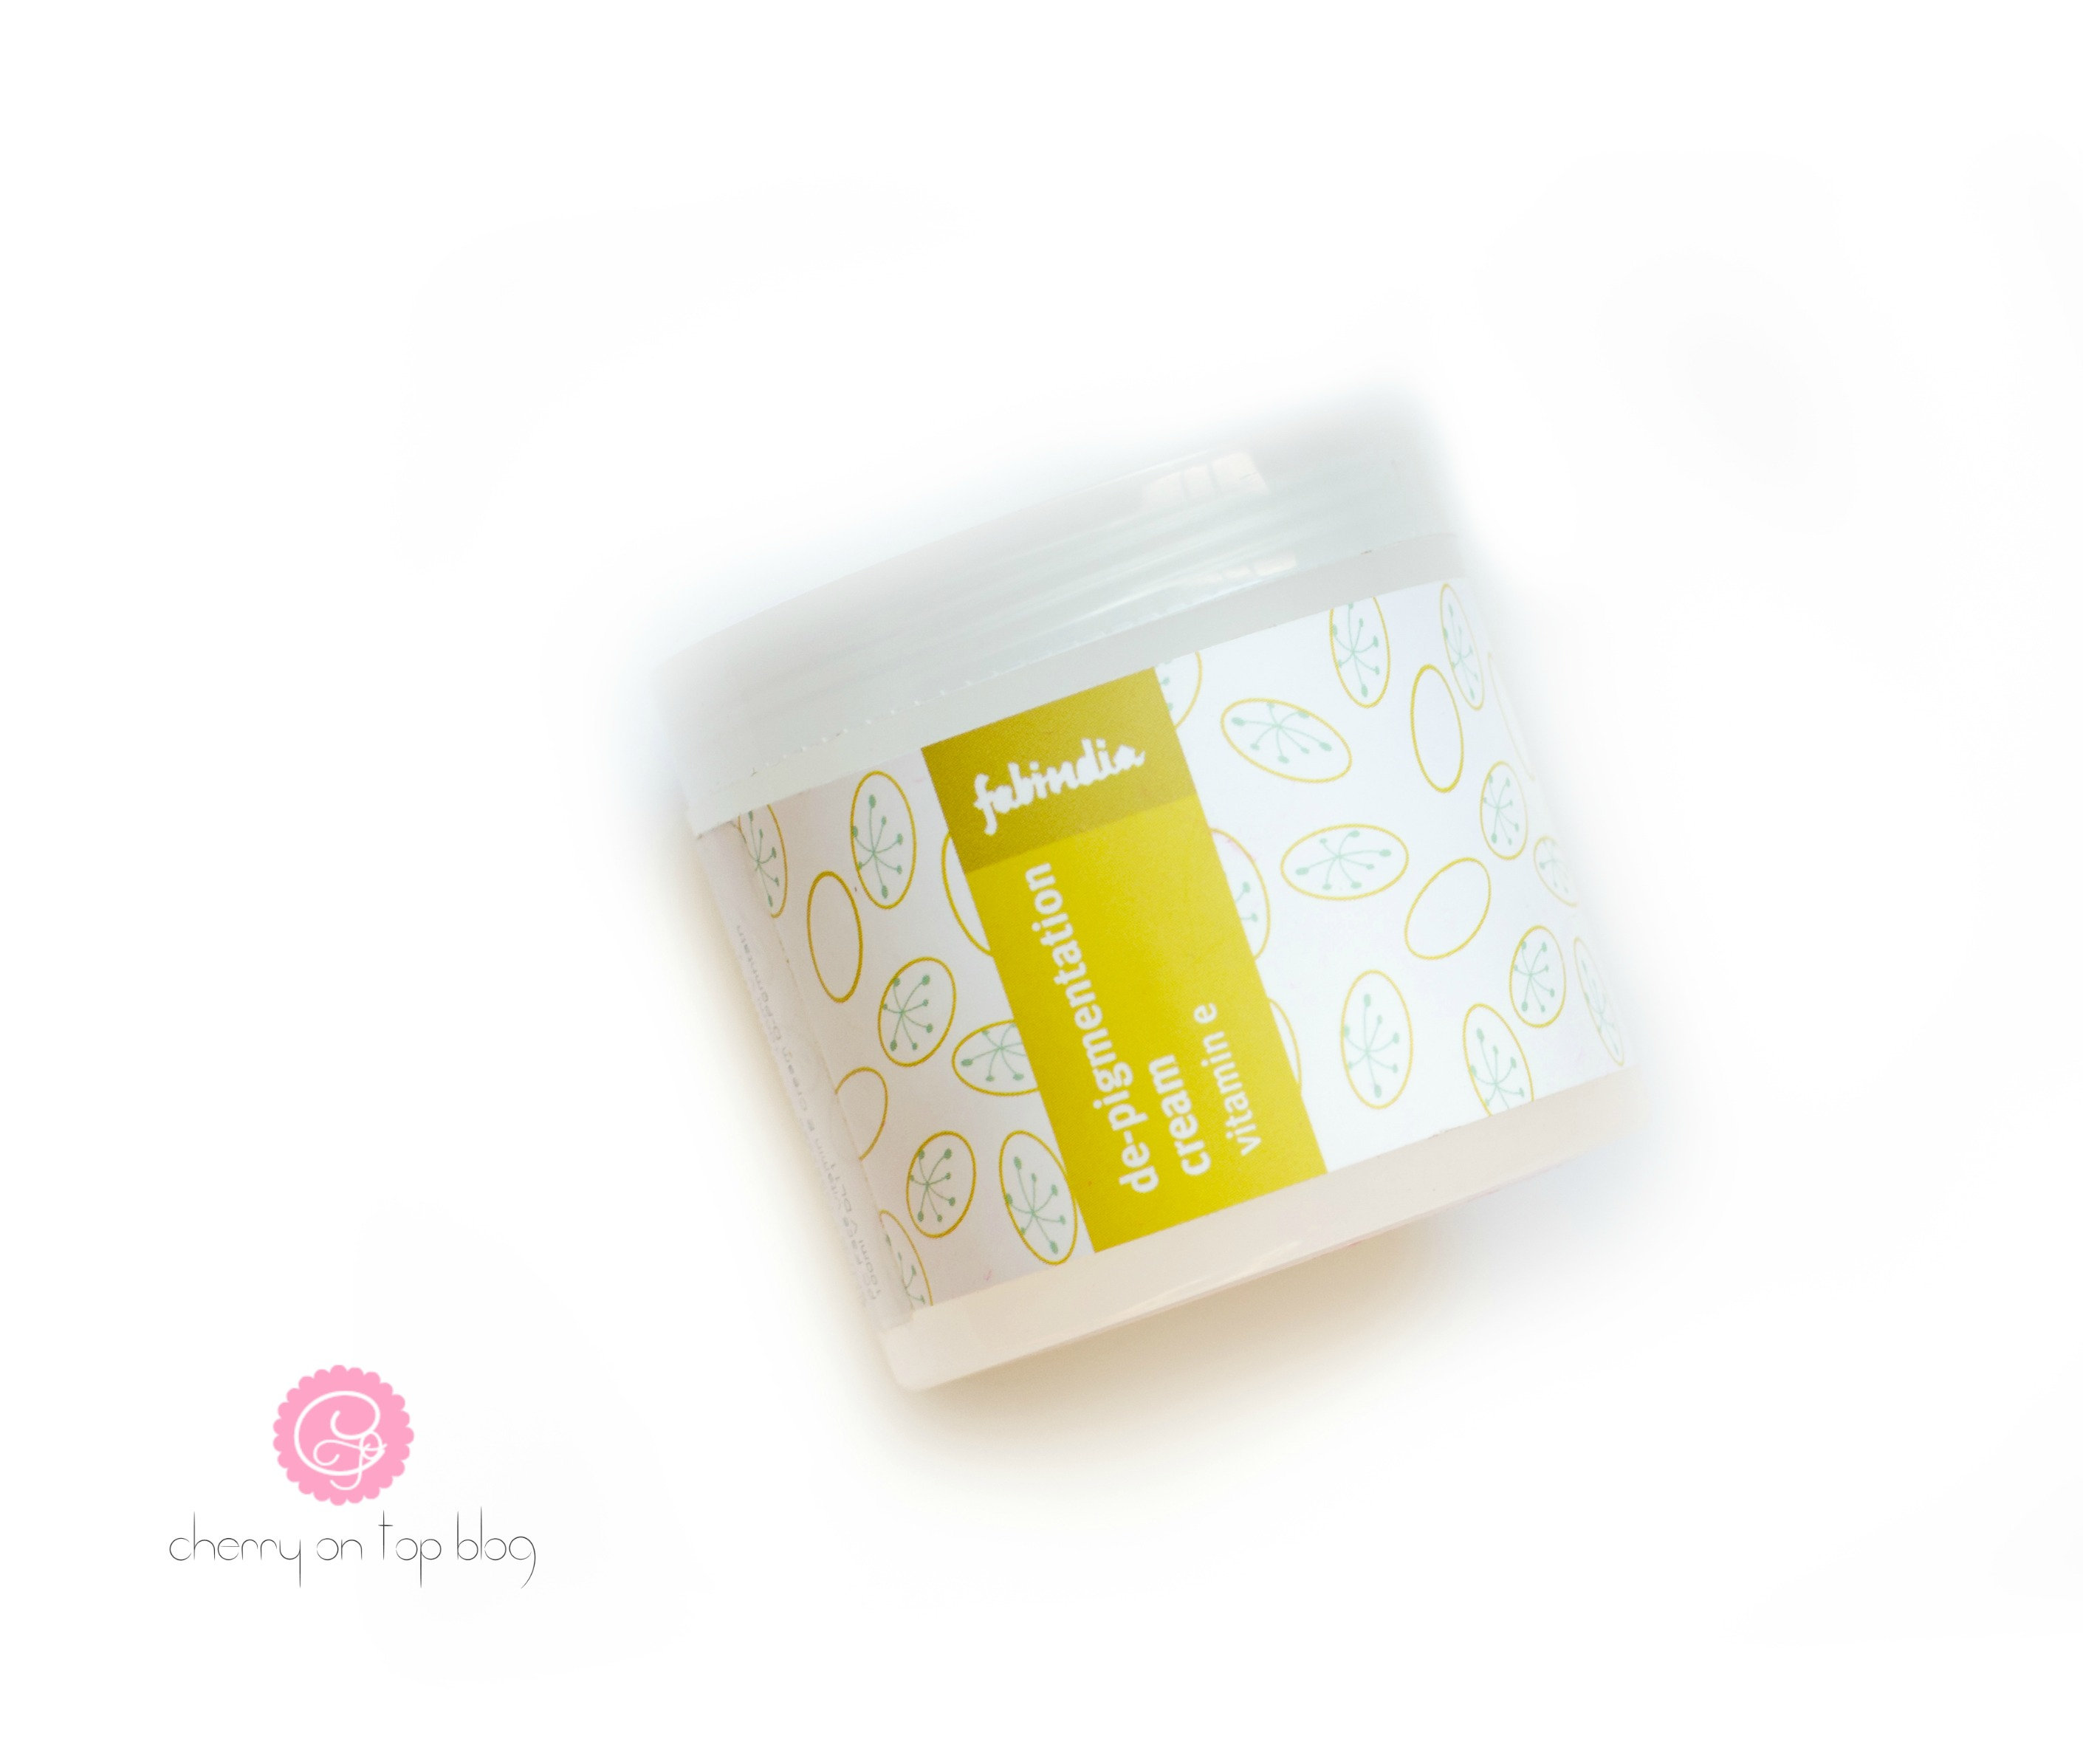 Mother's Day Gift Idea- Skincare Basket for Mommies  cherryontopblog.com